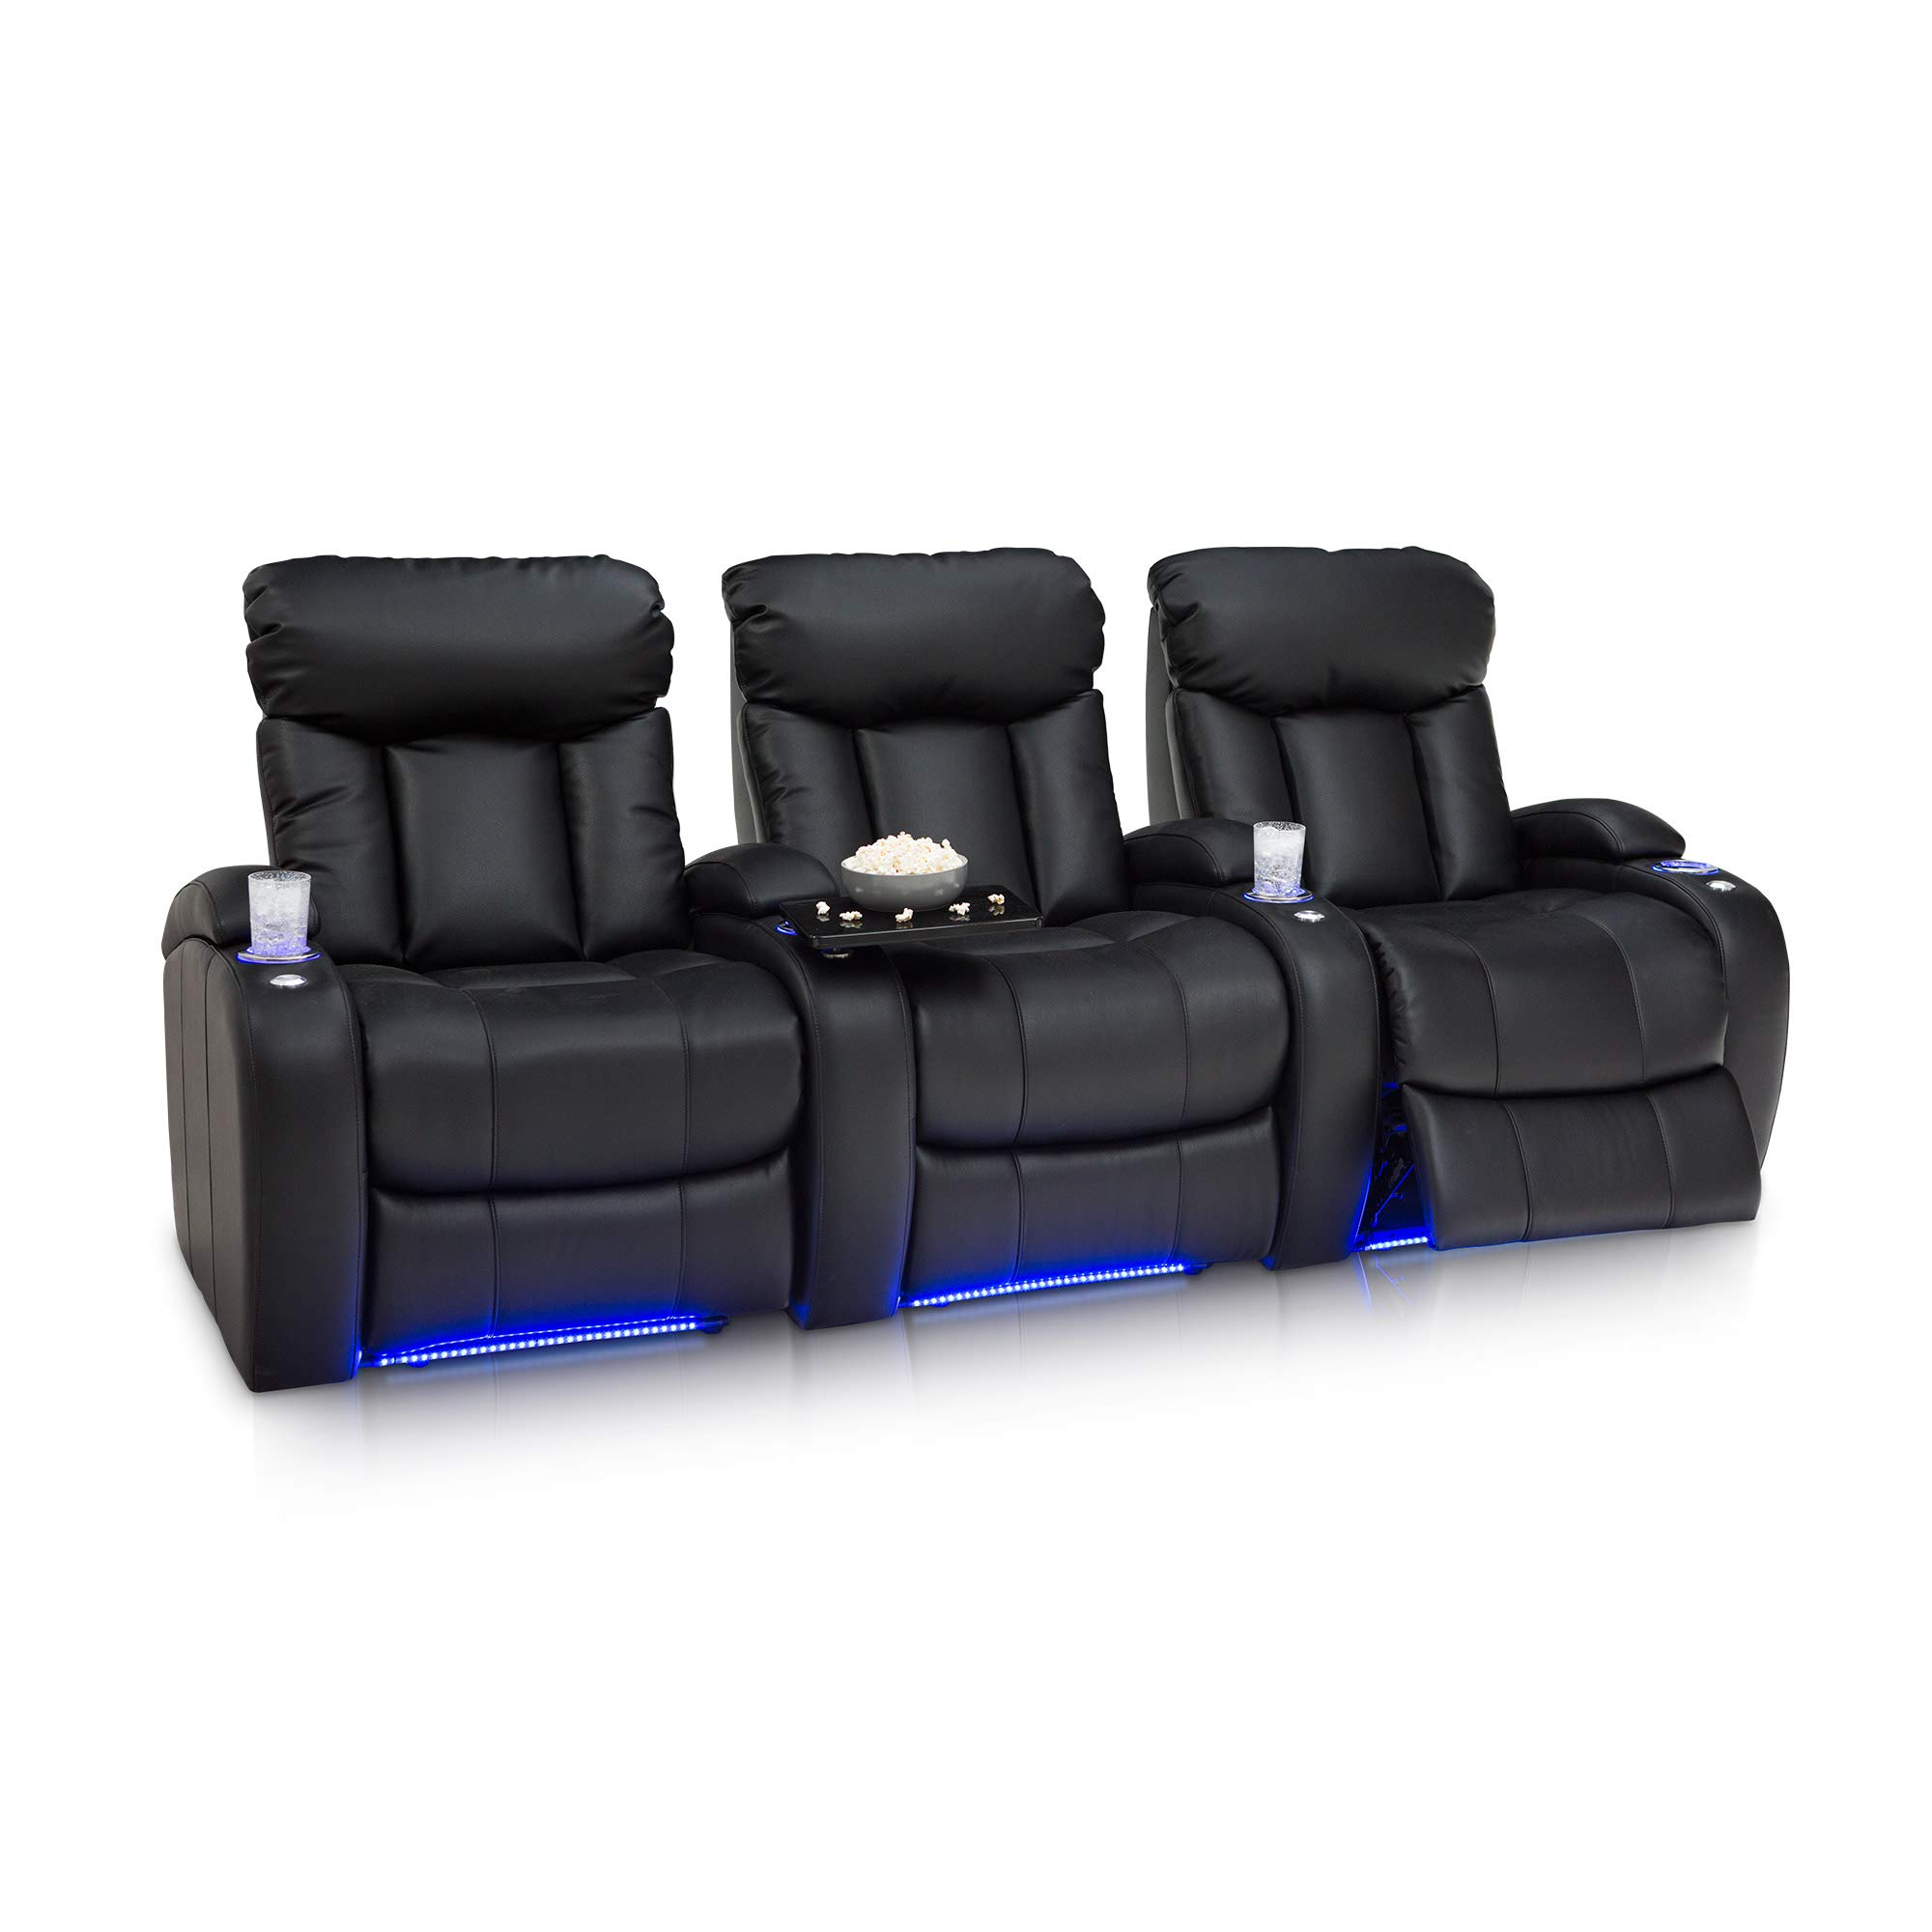 Seatcraft Orleans Home Theater Seating Manual Recline Leather Gel (Row of 3, Black) by Seatcraft